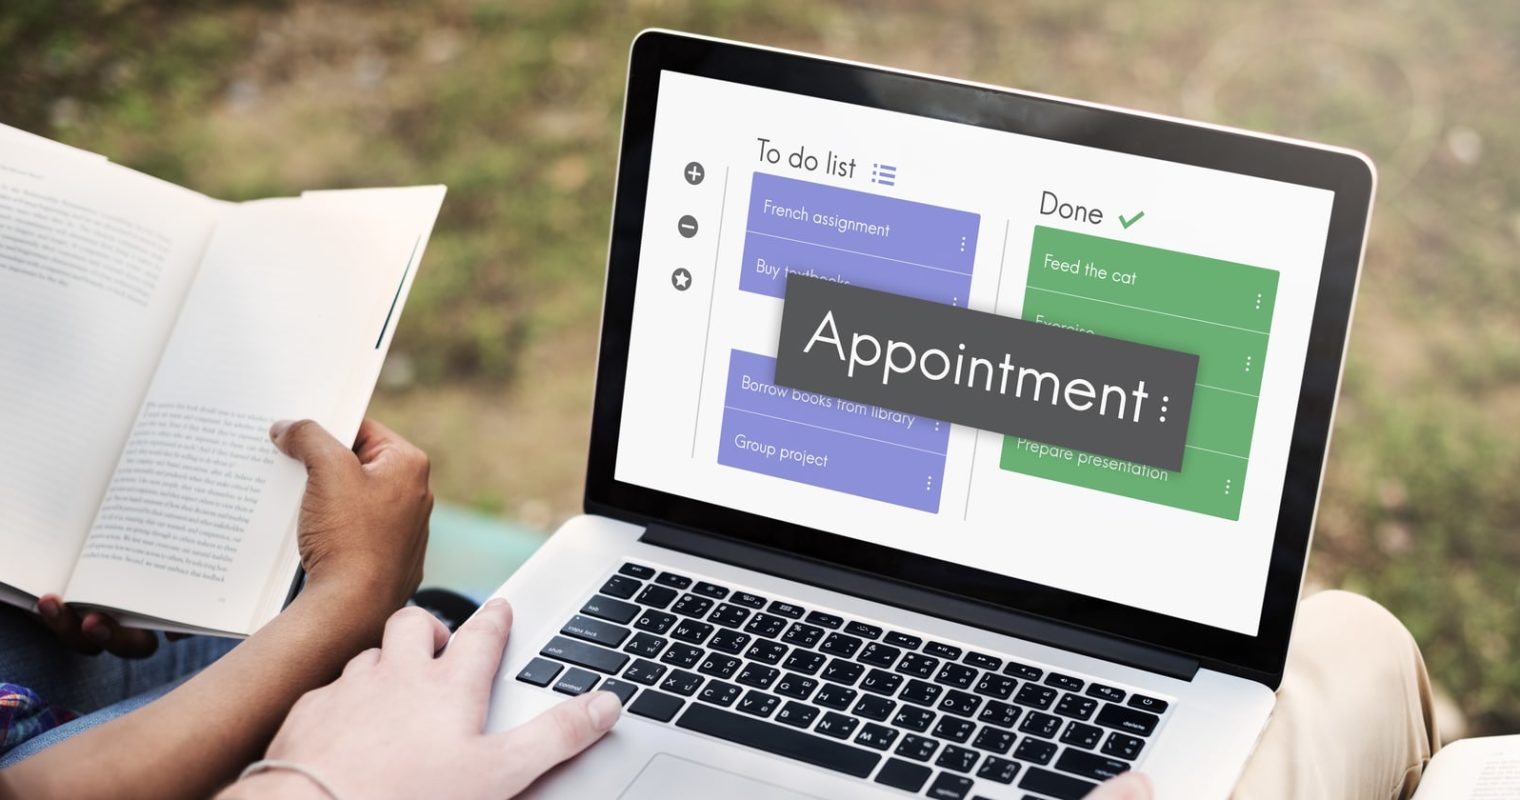 Book Your Next Spa or Salon Appointment in Google Search